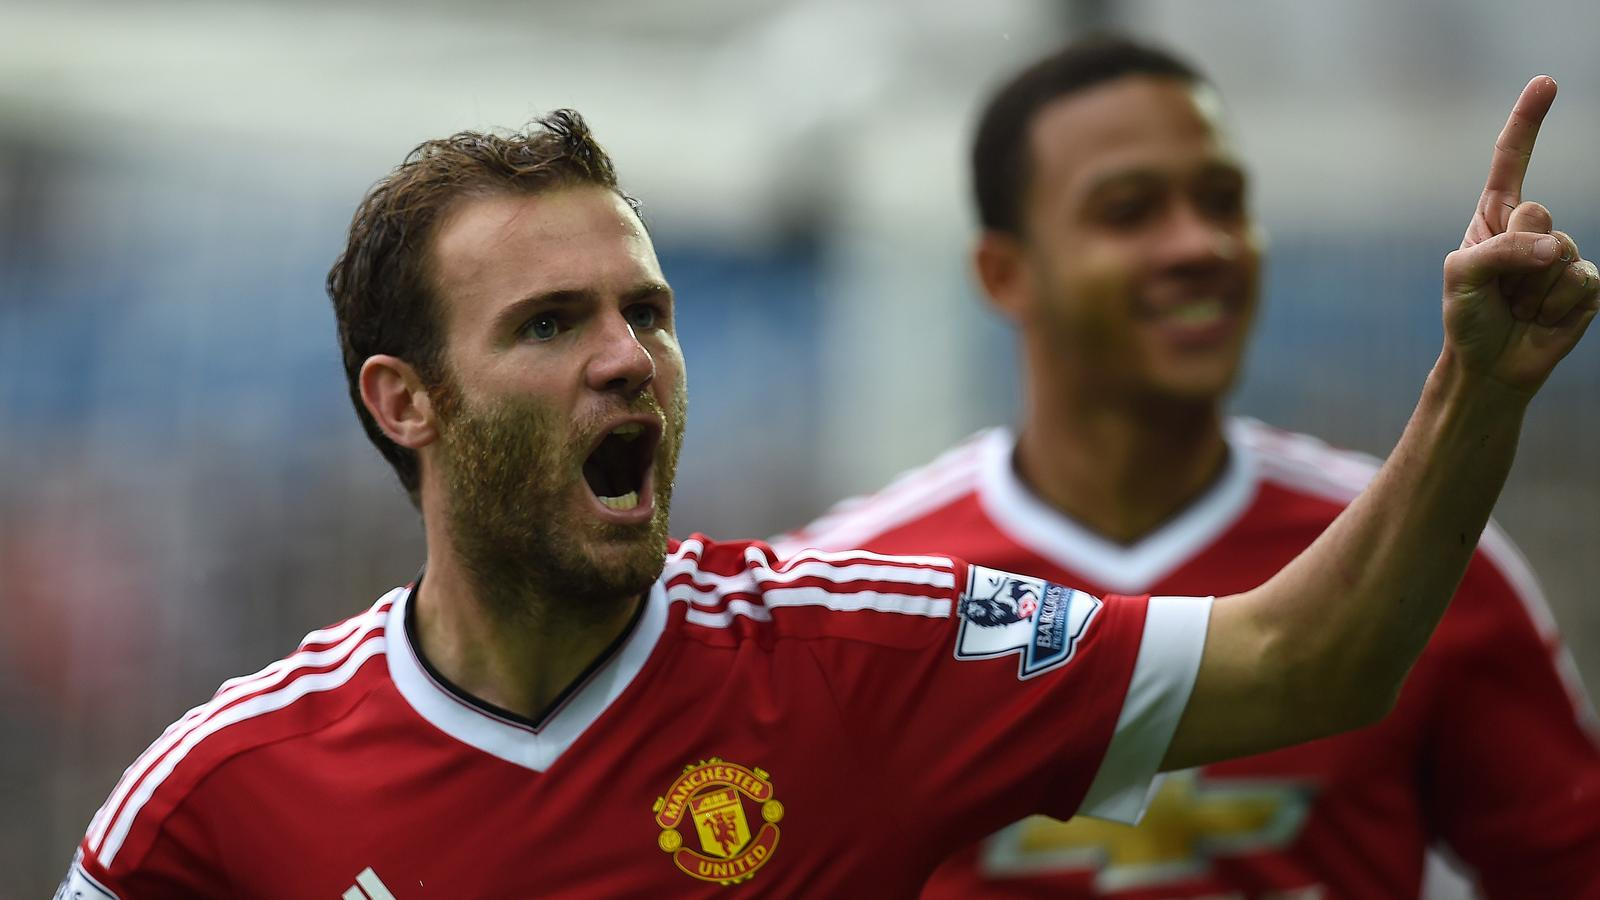 Manchester United's Spanish midfielder Juan Mata (L) celebrates his goal after scoring during the English Premier League football match between Swansea City and Manchester United at The Liberty Stadium in Swansea, south Wales on August 30, 2015